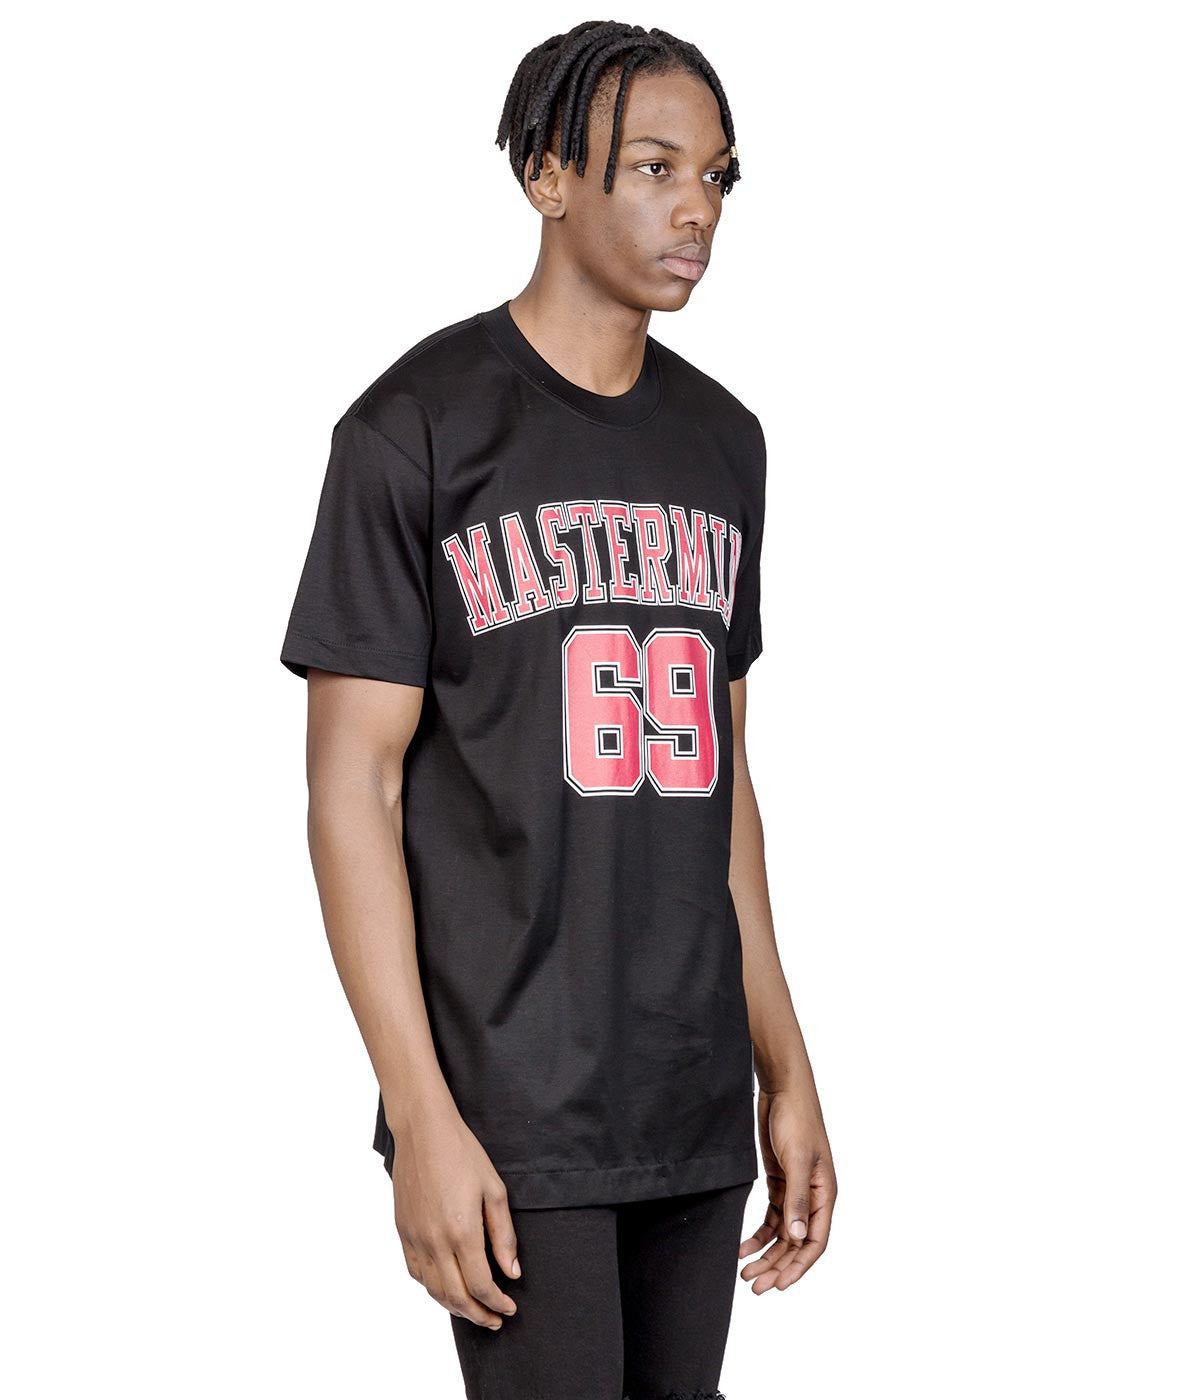 Black mastermind Feat. A-GIRL'S 69 T-shirt